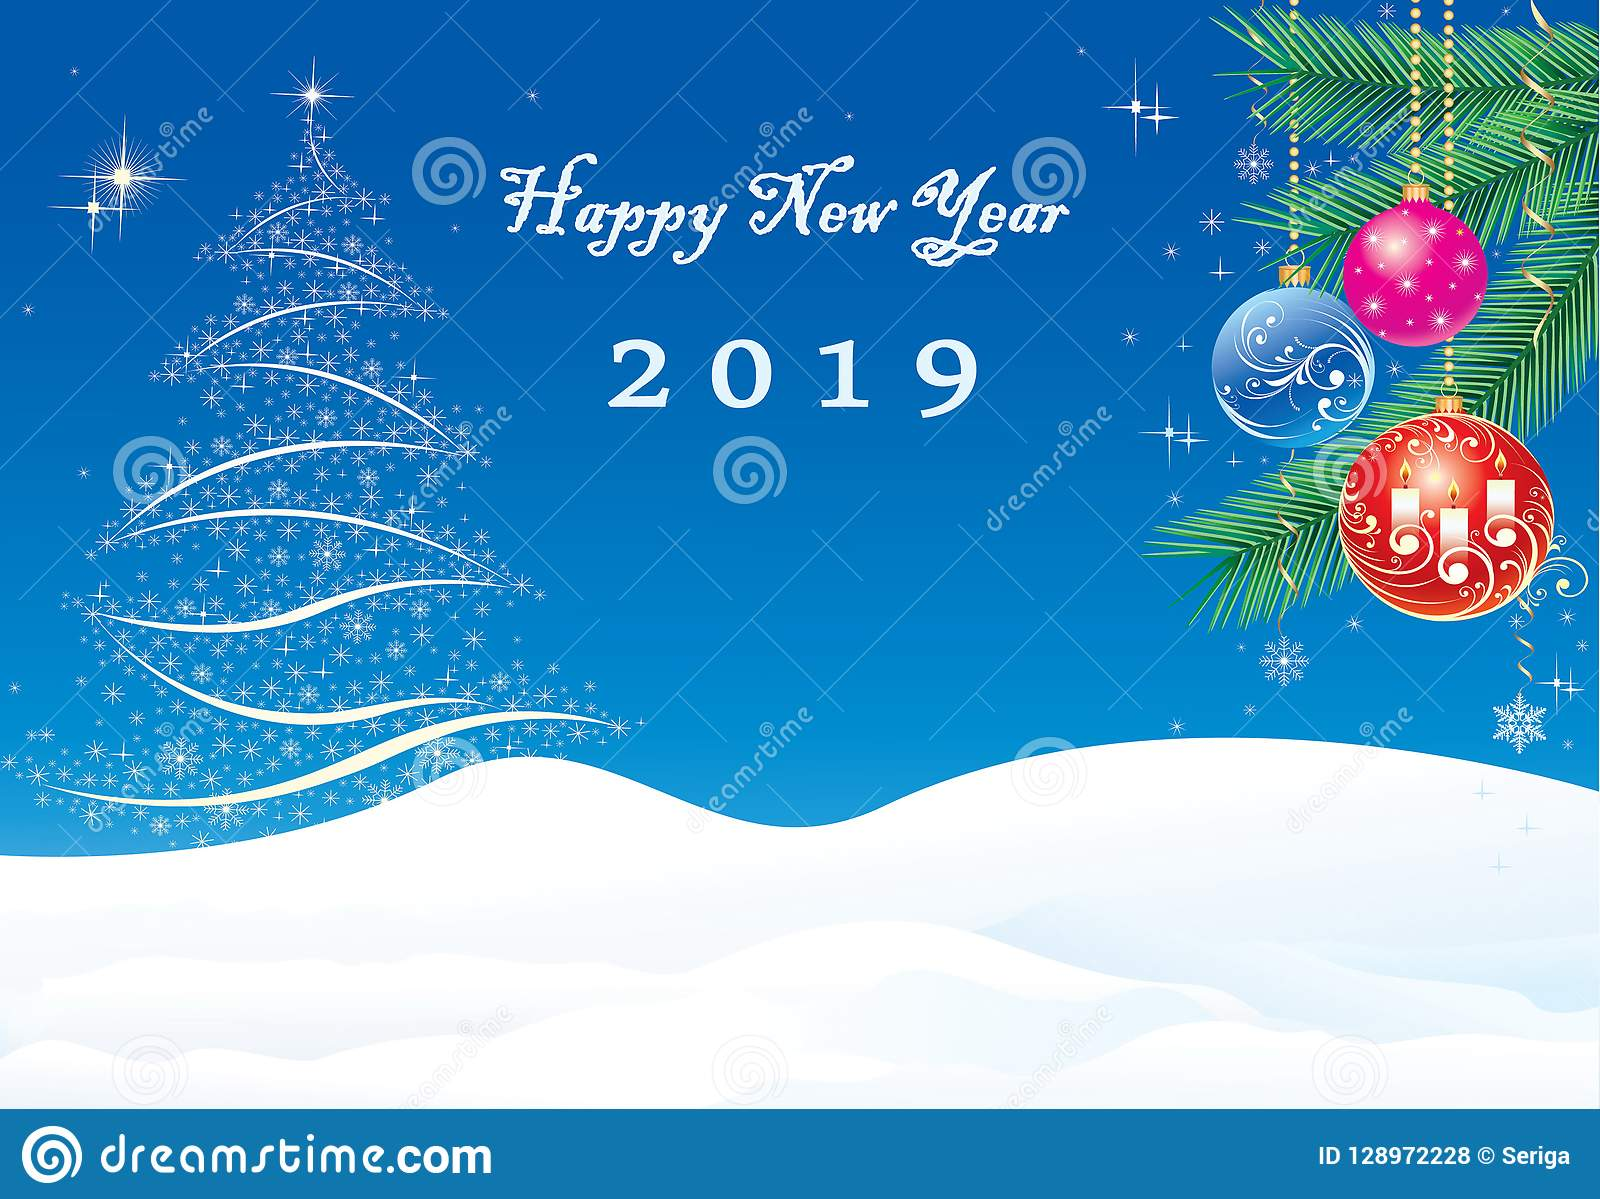 2019 happy new year christmas tree and balls on spruce branches